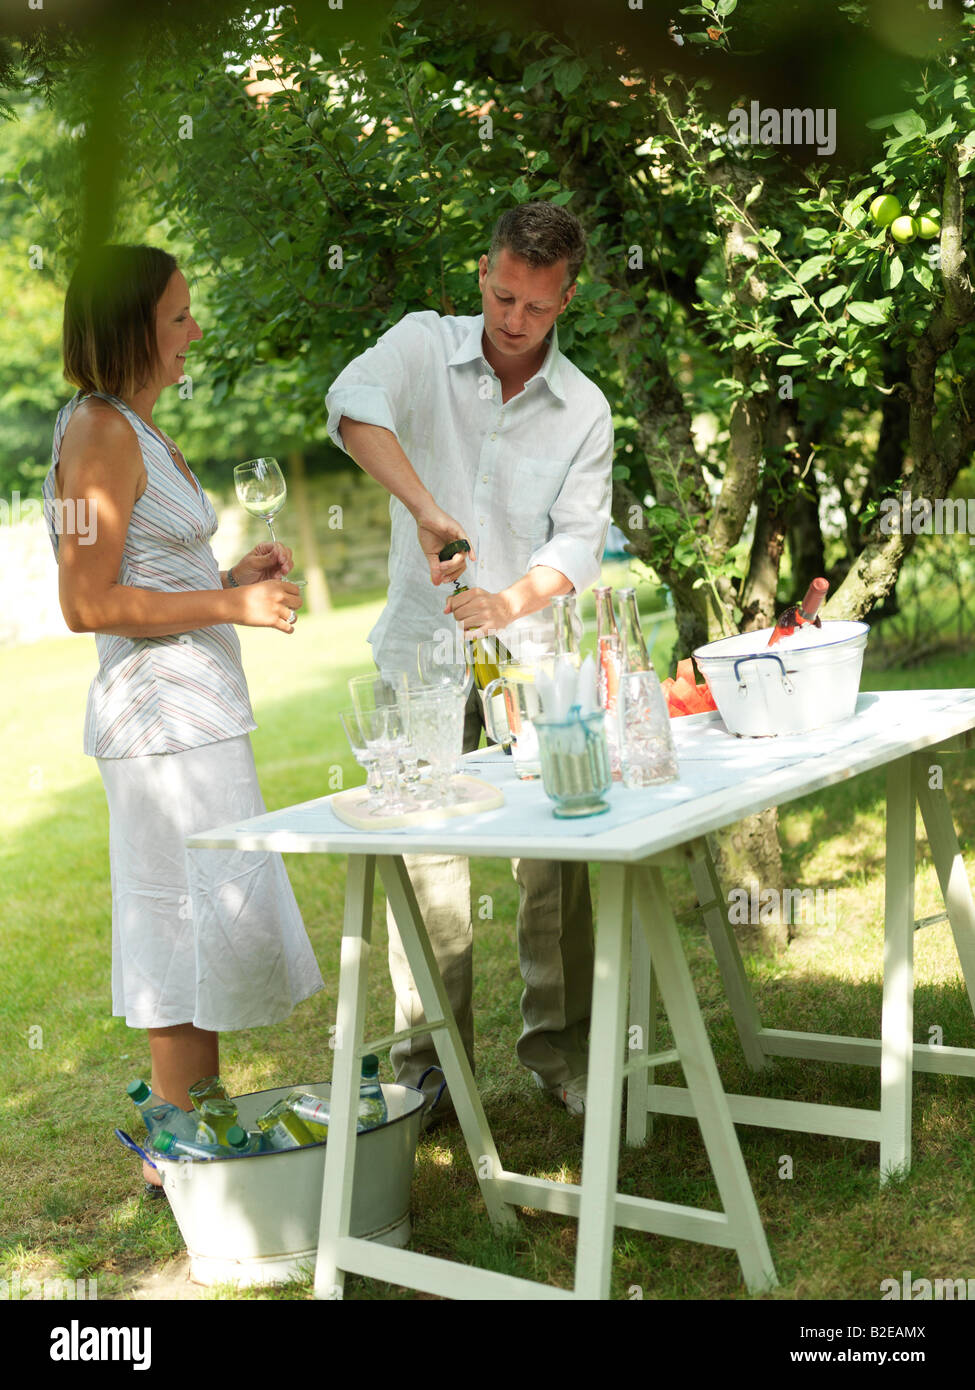 Woman looking at man opening bottle in garden - Stock Image